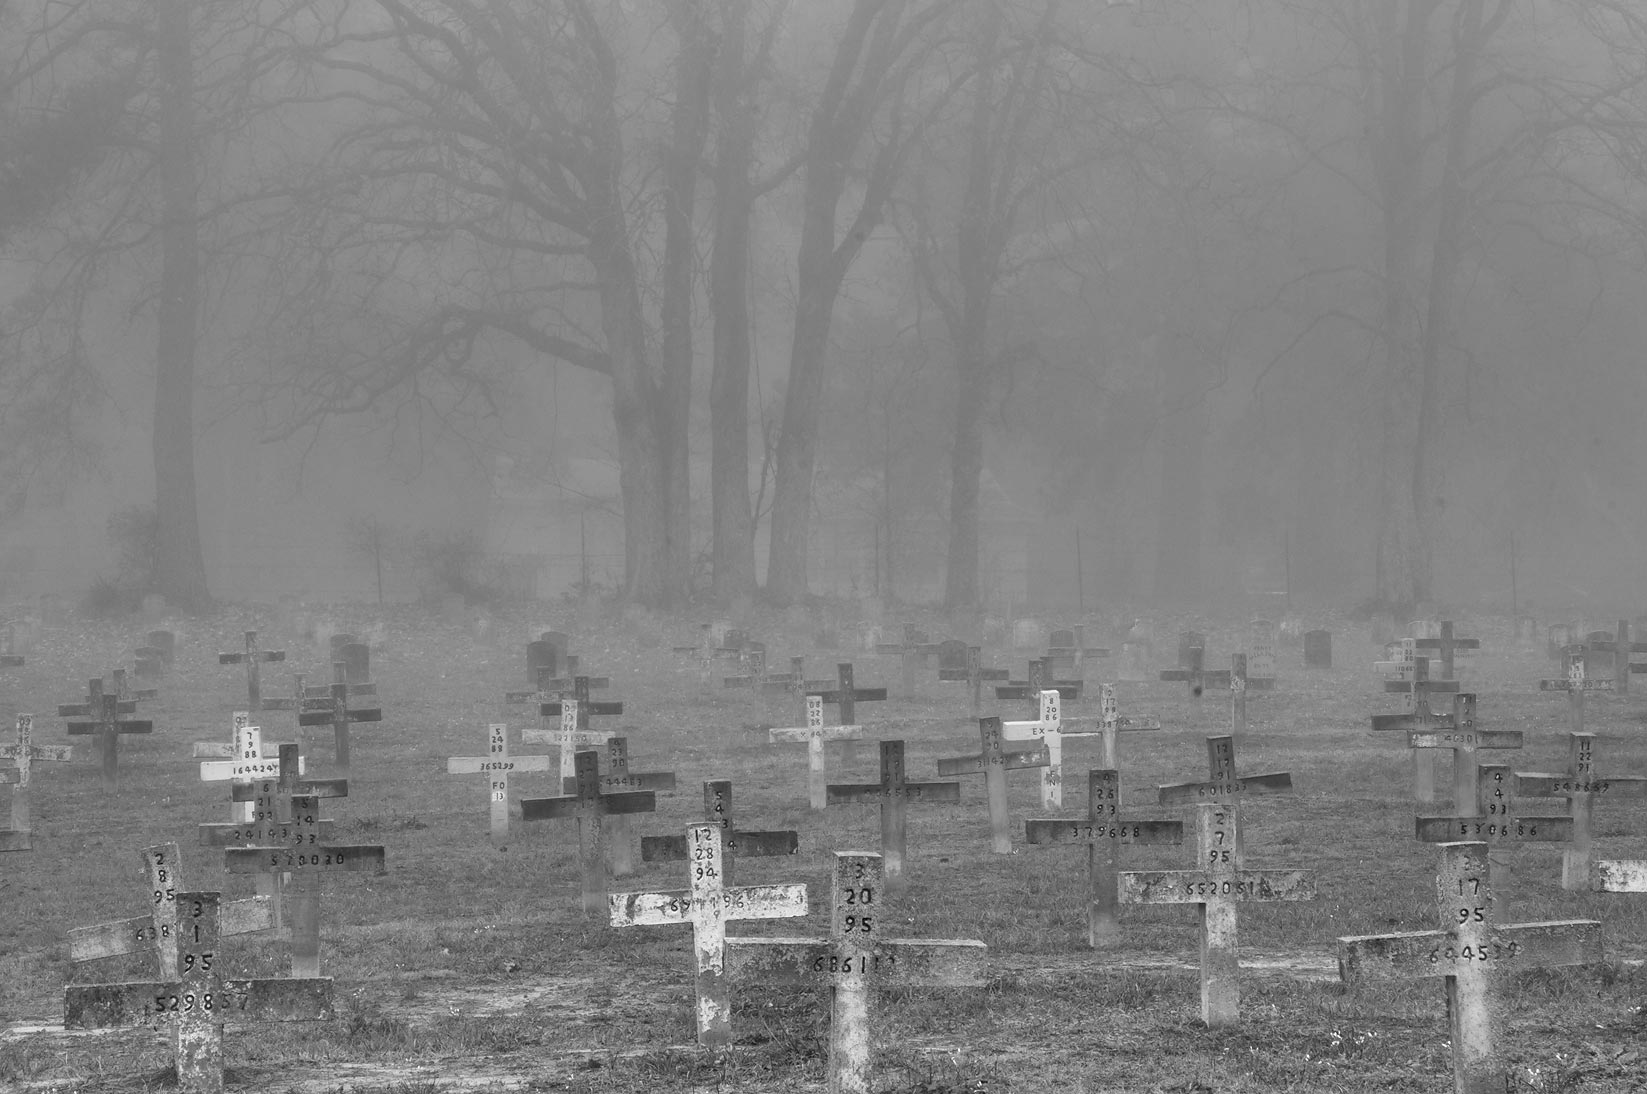 Crosses of TDCJ Captain Joe Byrd (Peckerwood Hill) Cemetery in fog. Huntsville, Texas